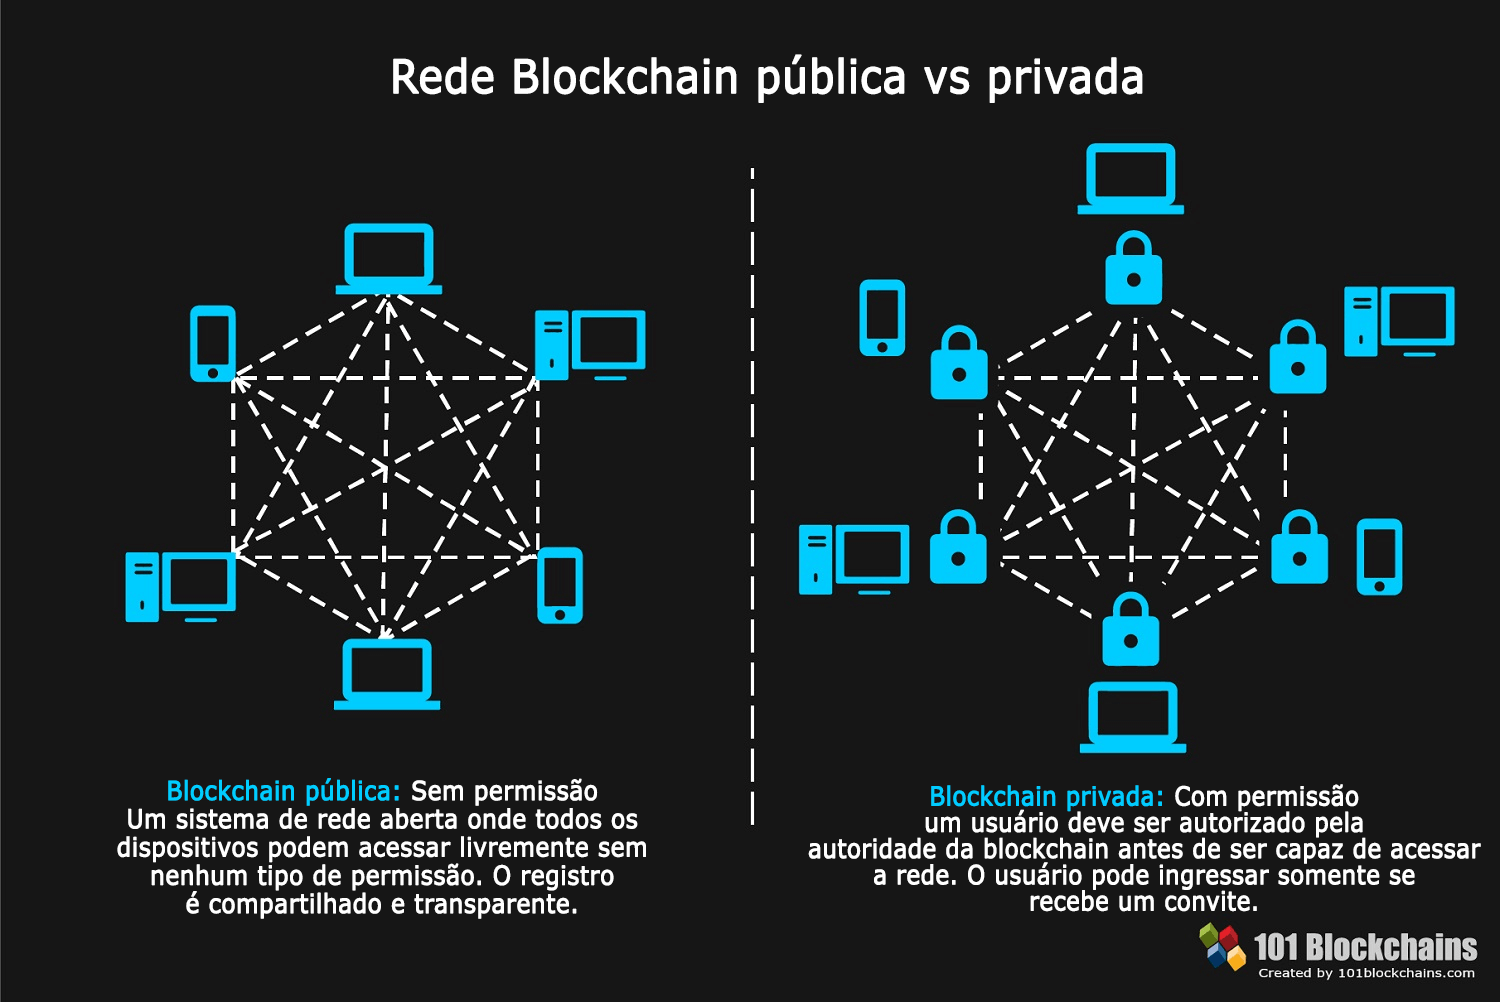 Rede Blockchain pública vs privada